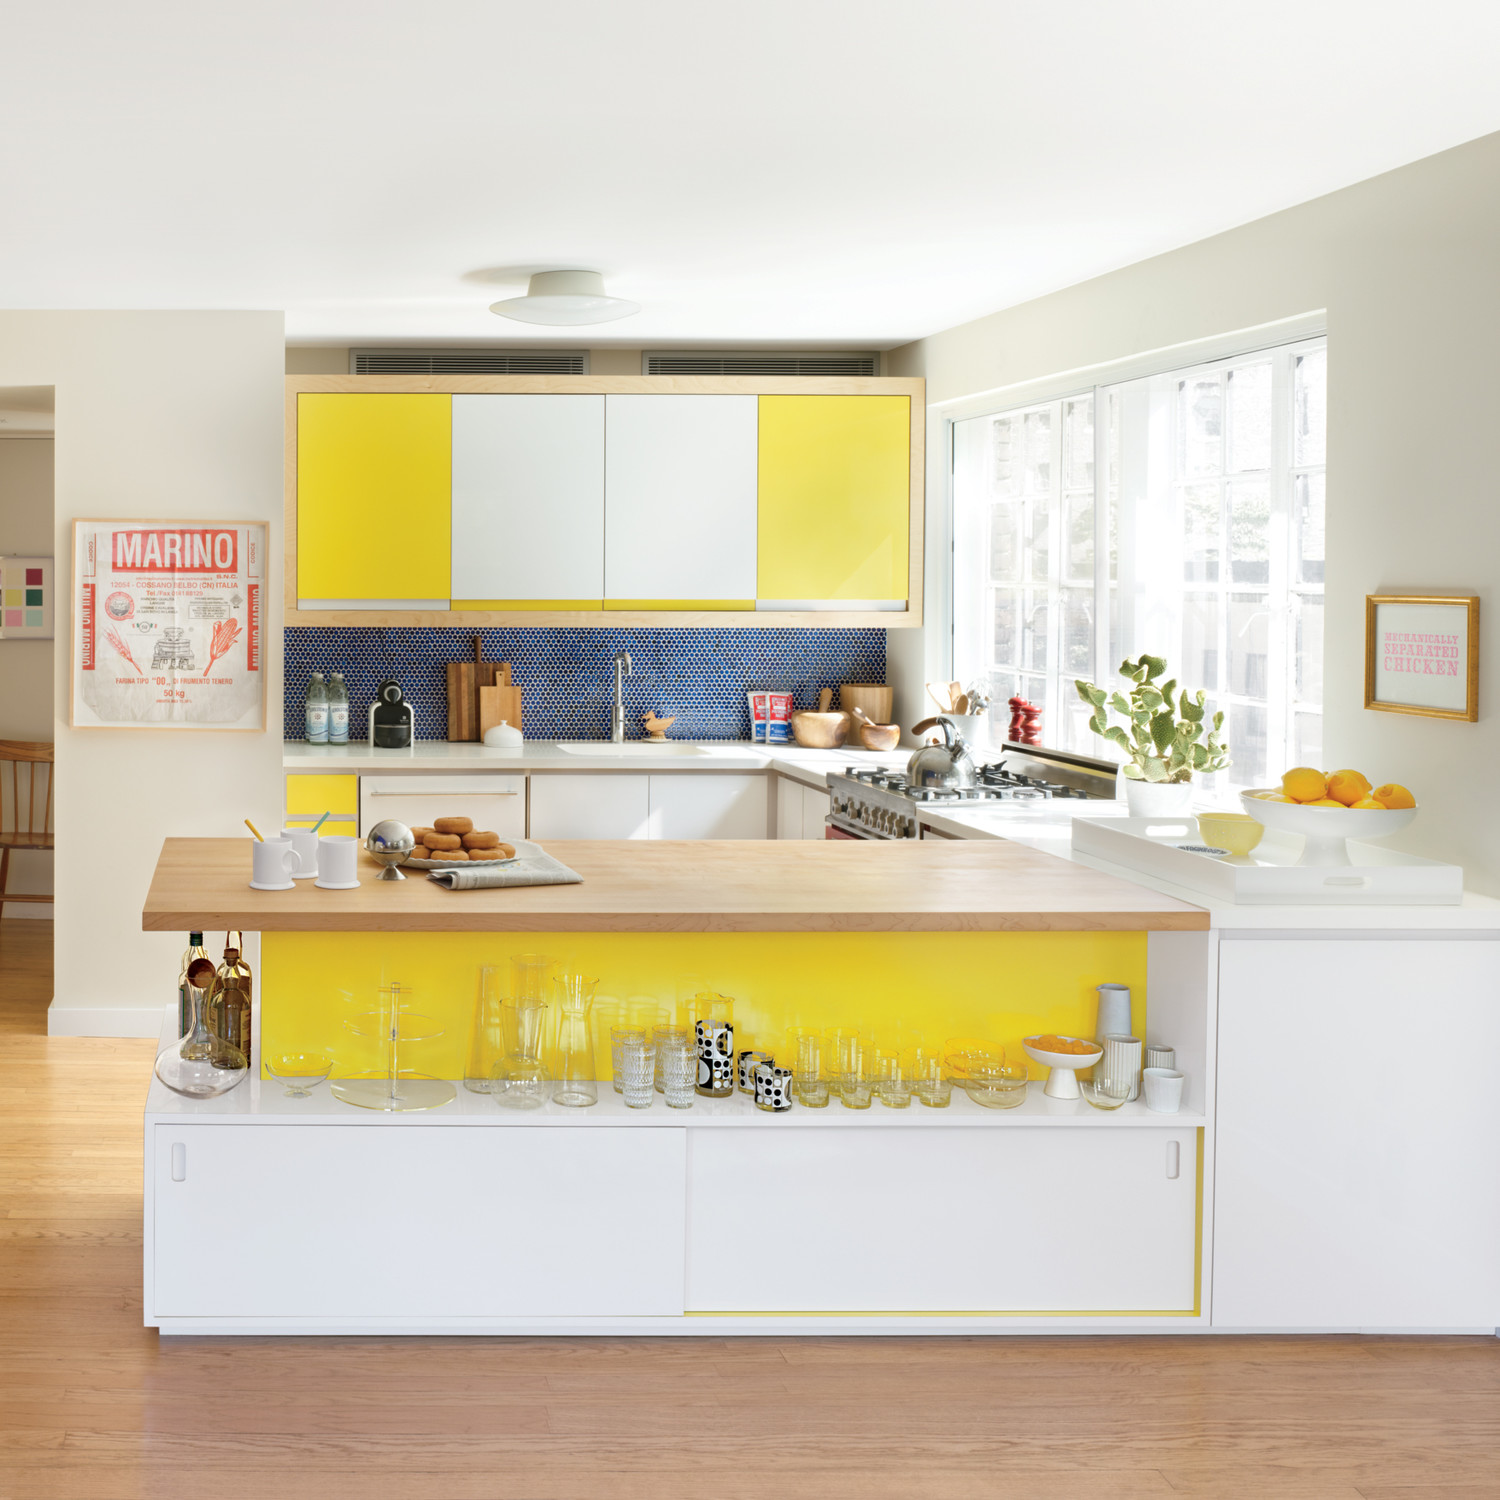 Kitchen Styles Pictures: Our Favorite Kitchen Styles